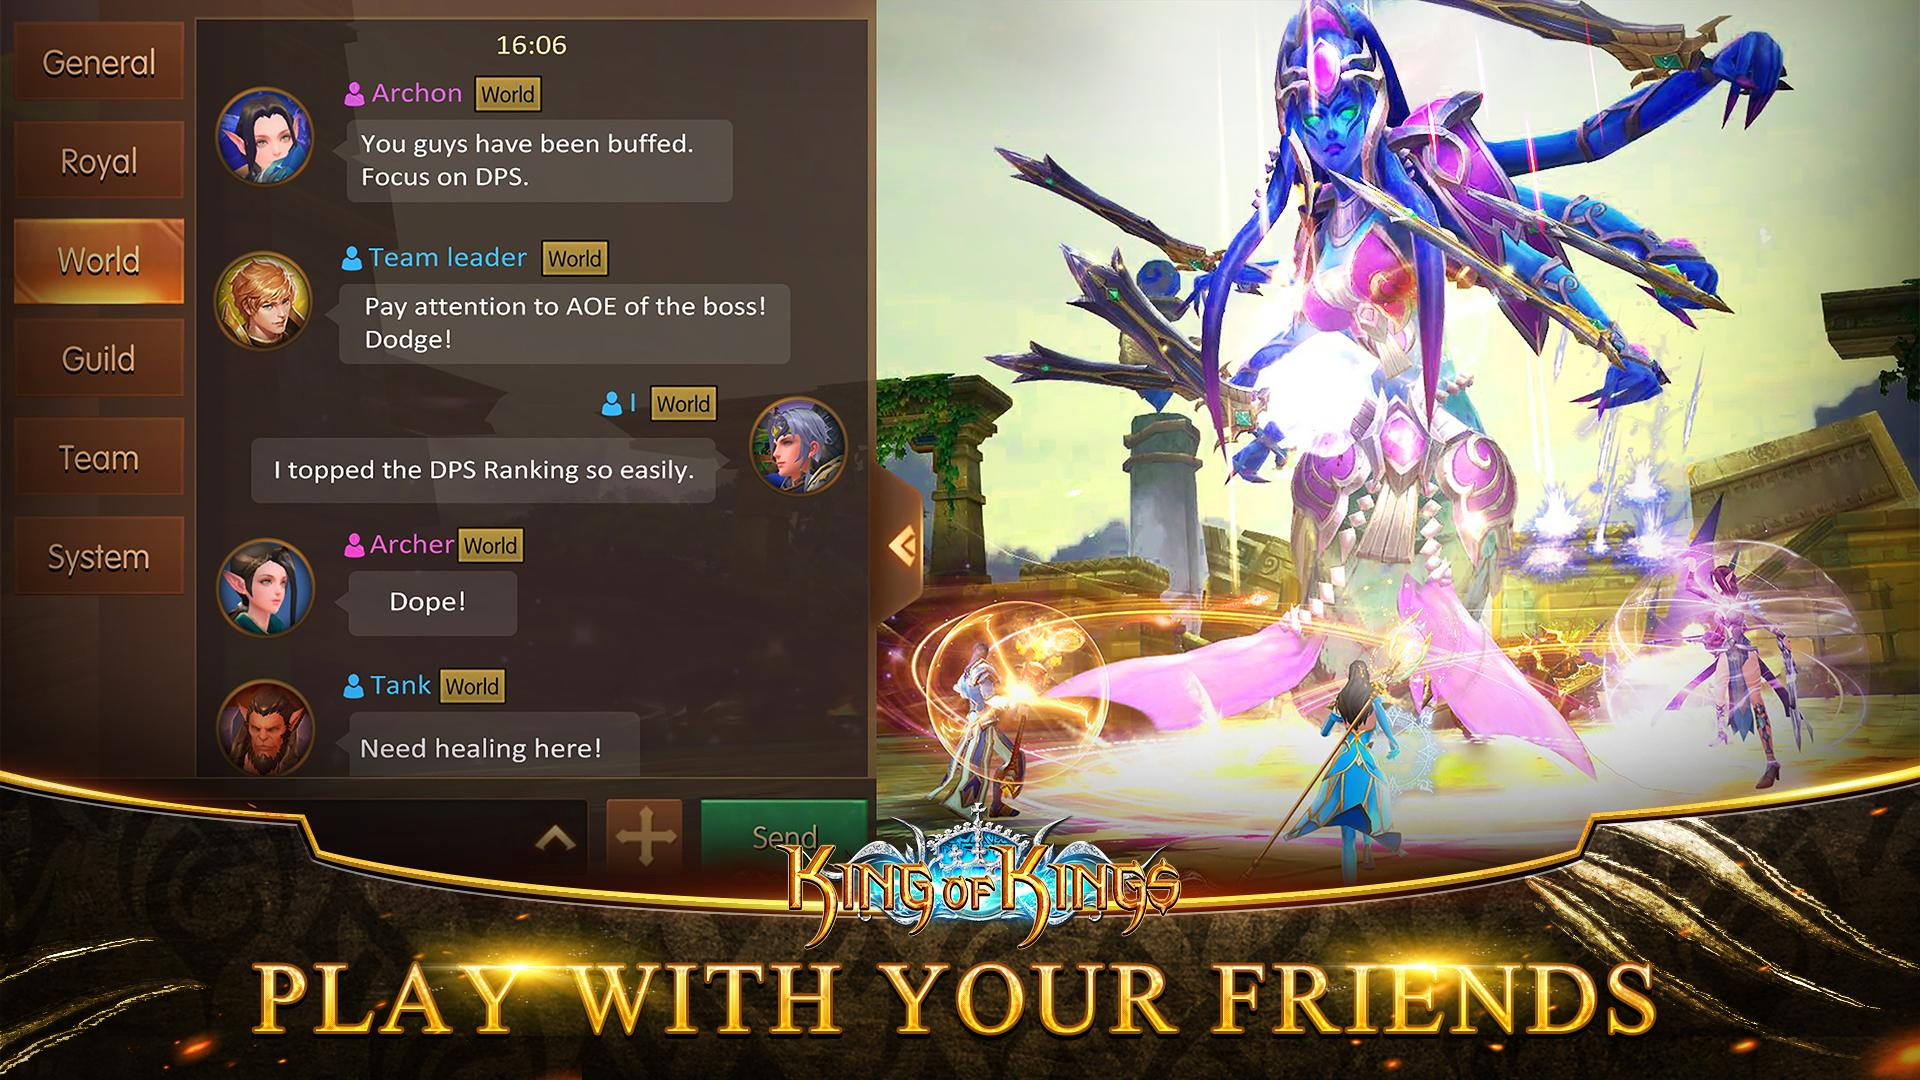 King of Kings for Android - APK Download -